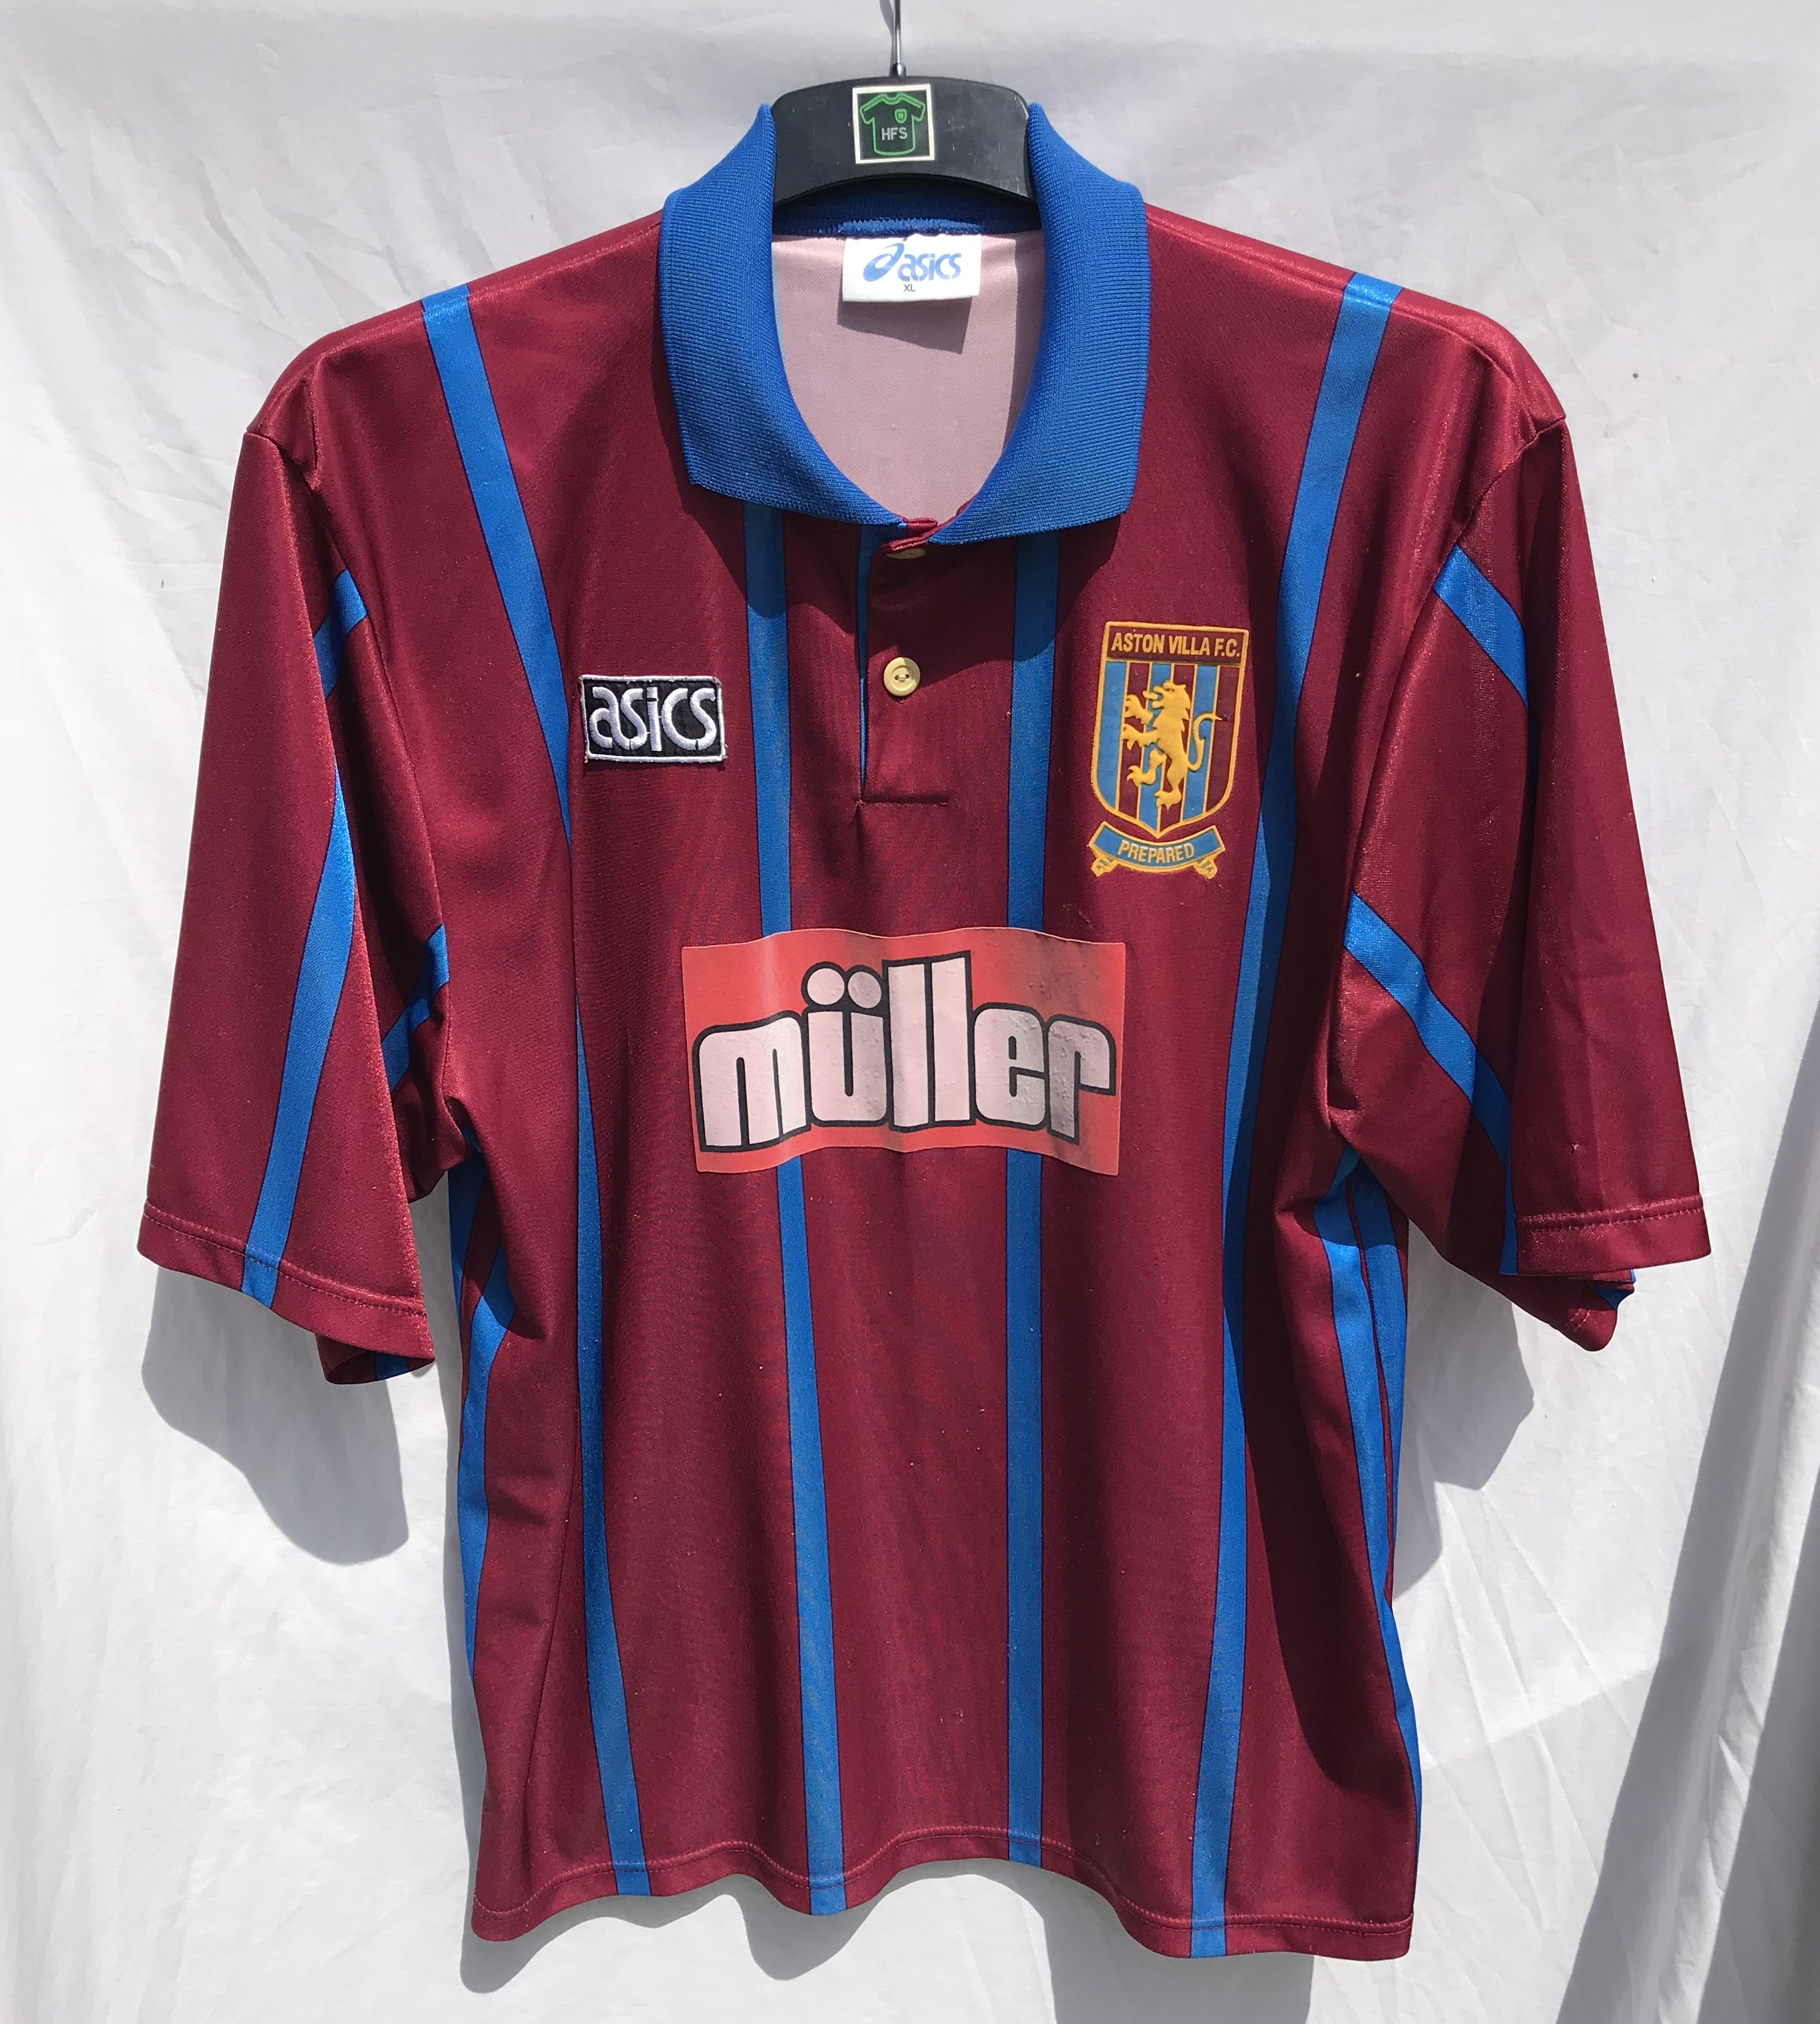 reputable site d5197 d79b1 Aston Villa Football Shirt 1993/95 Adults XL Asics ...